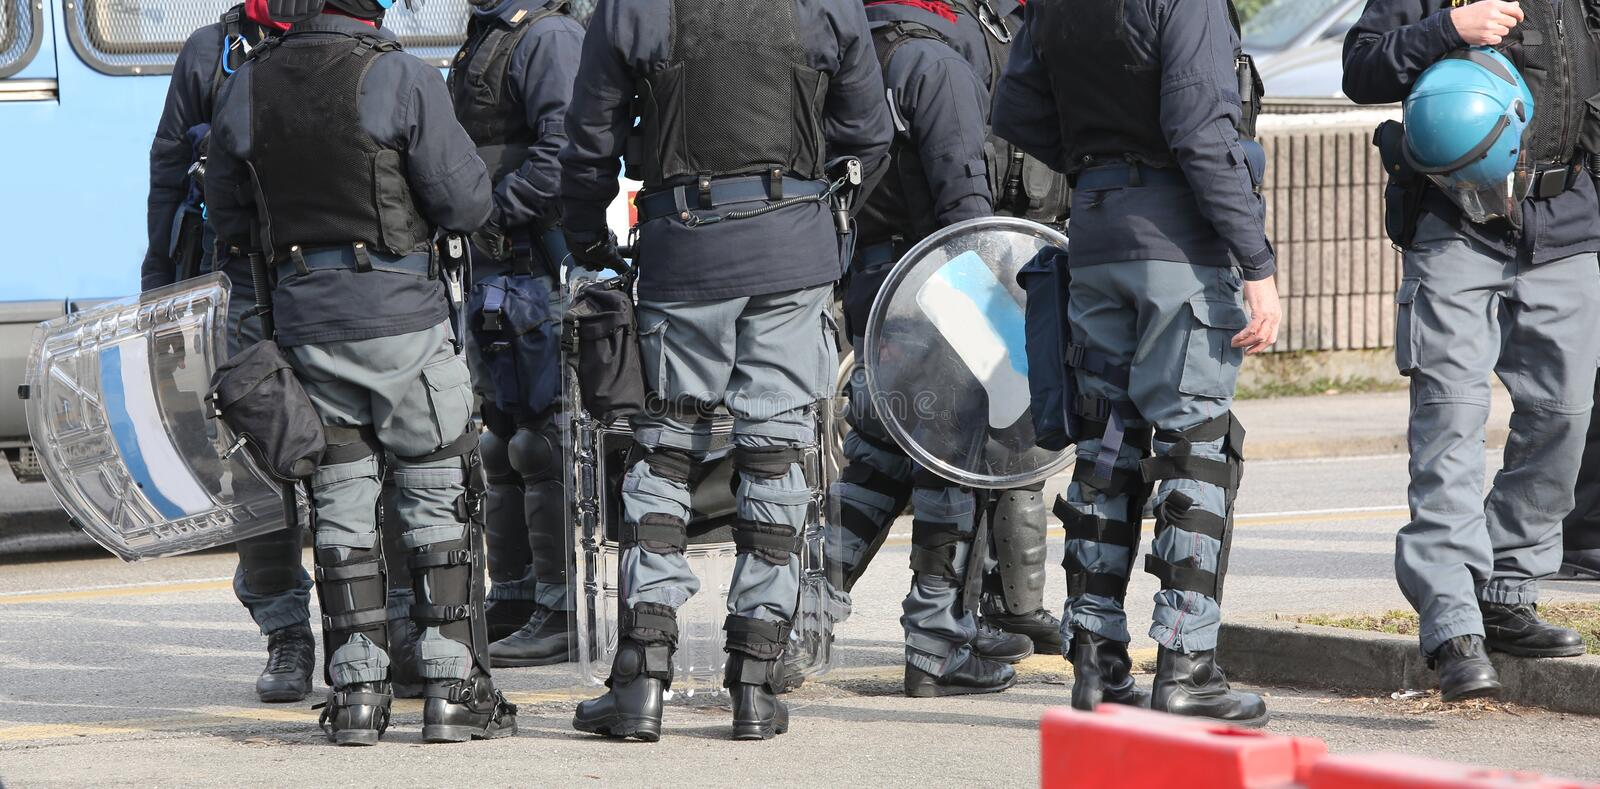 Police team in riot gear before the sport to avoid scuffles royalty free stock image